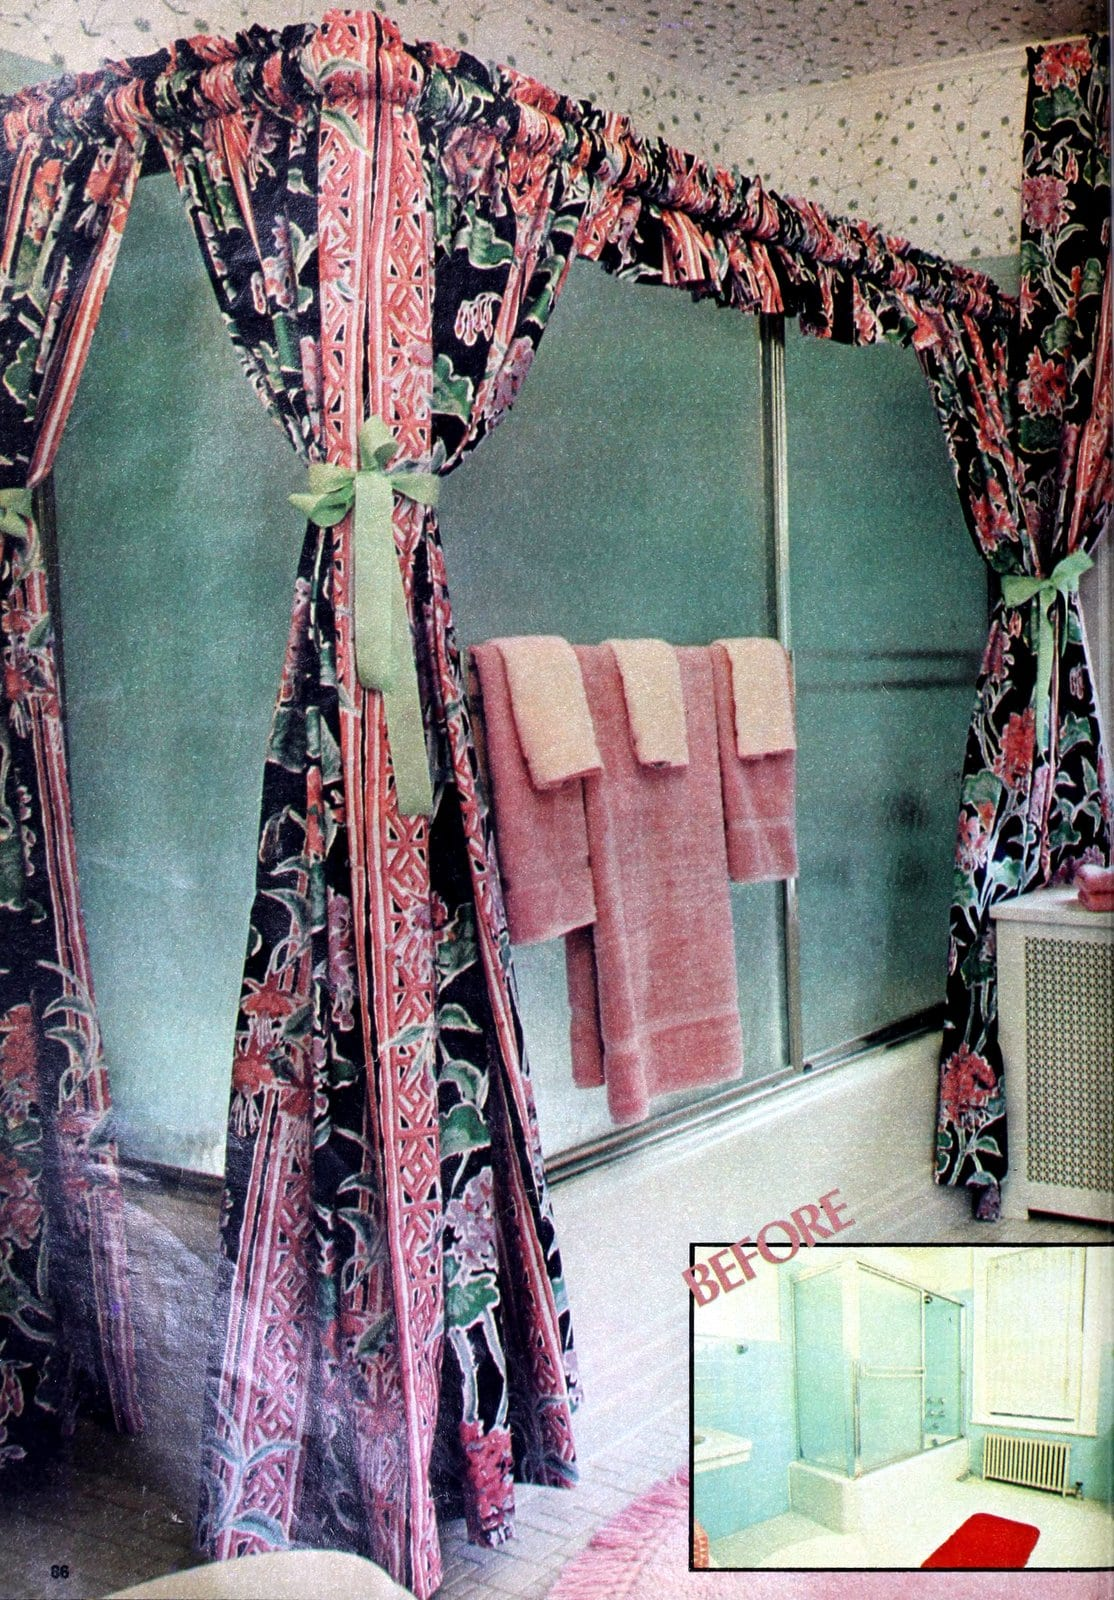 Vintage bathroom remodel with floral shower curtain canopy-style (1981)